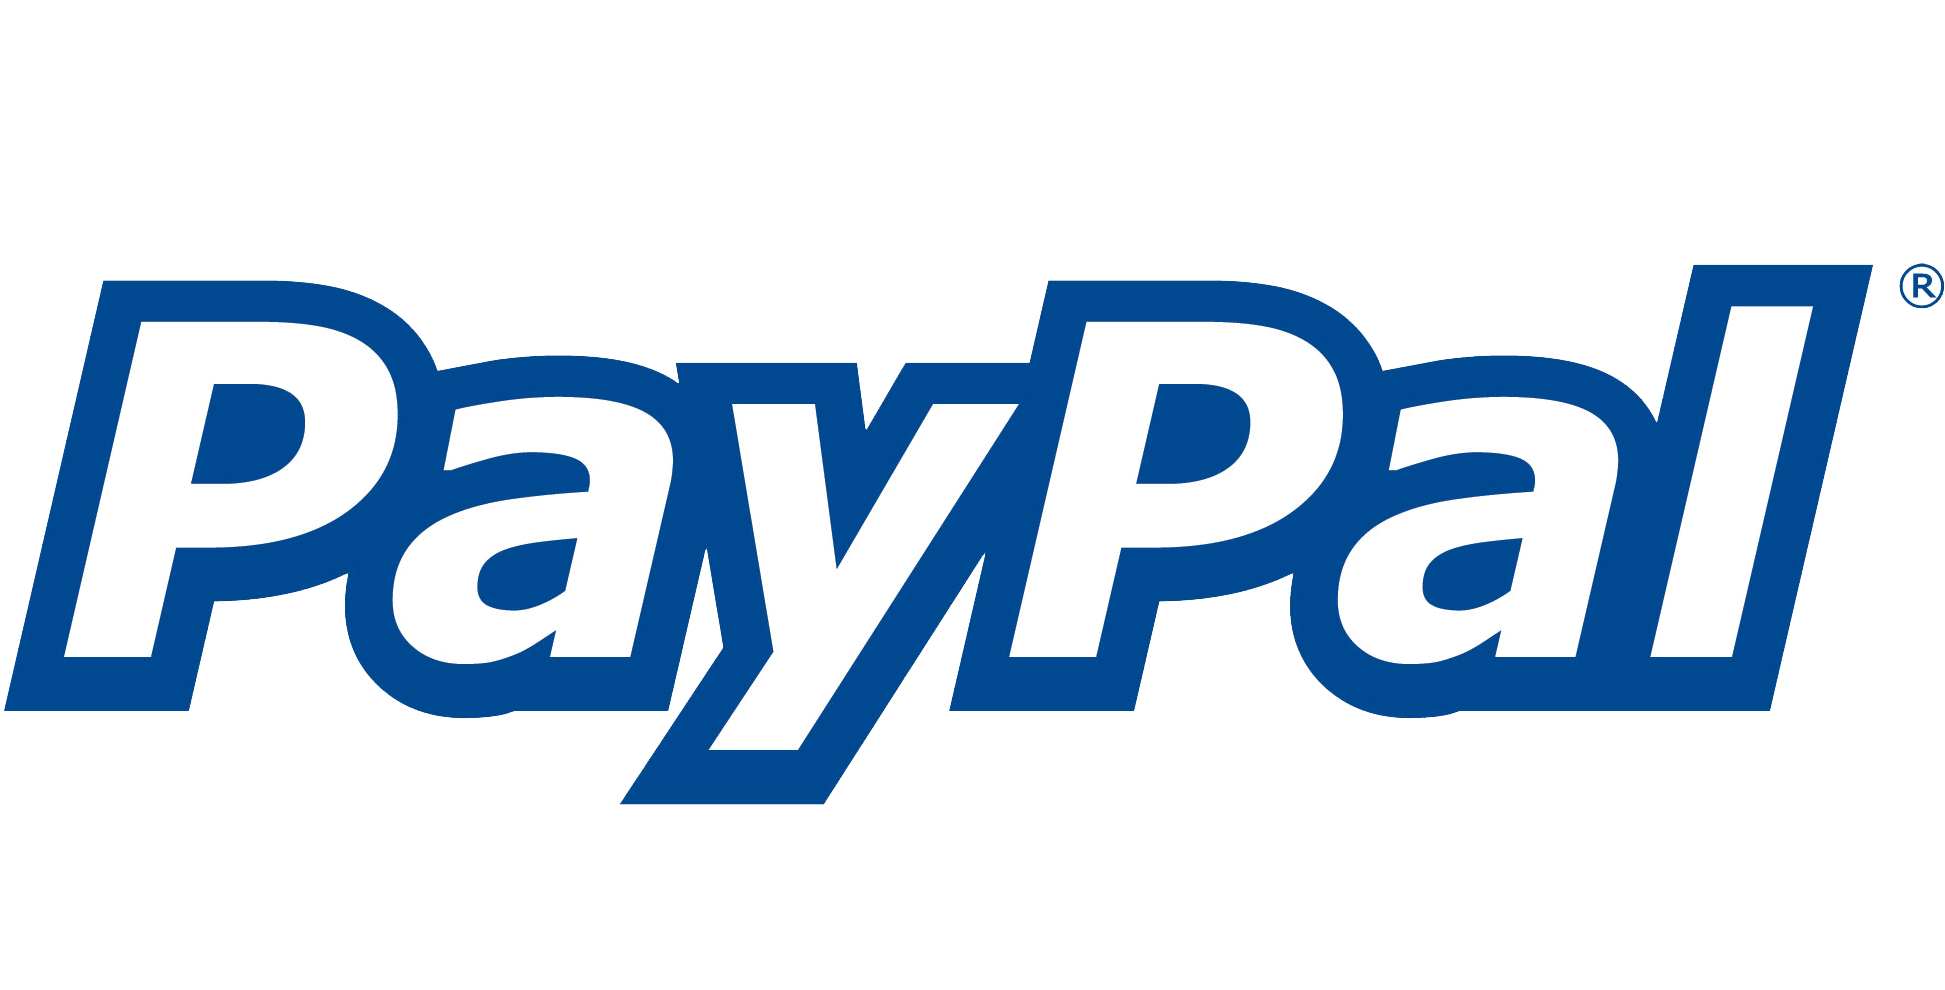 Buffdaddys Paypal CS:GO Team